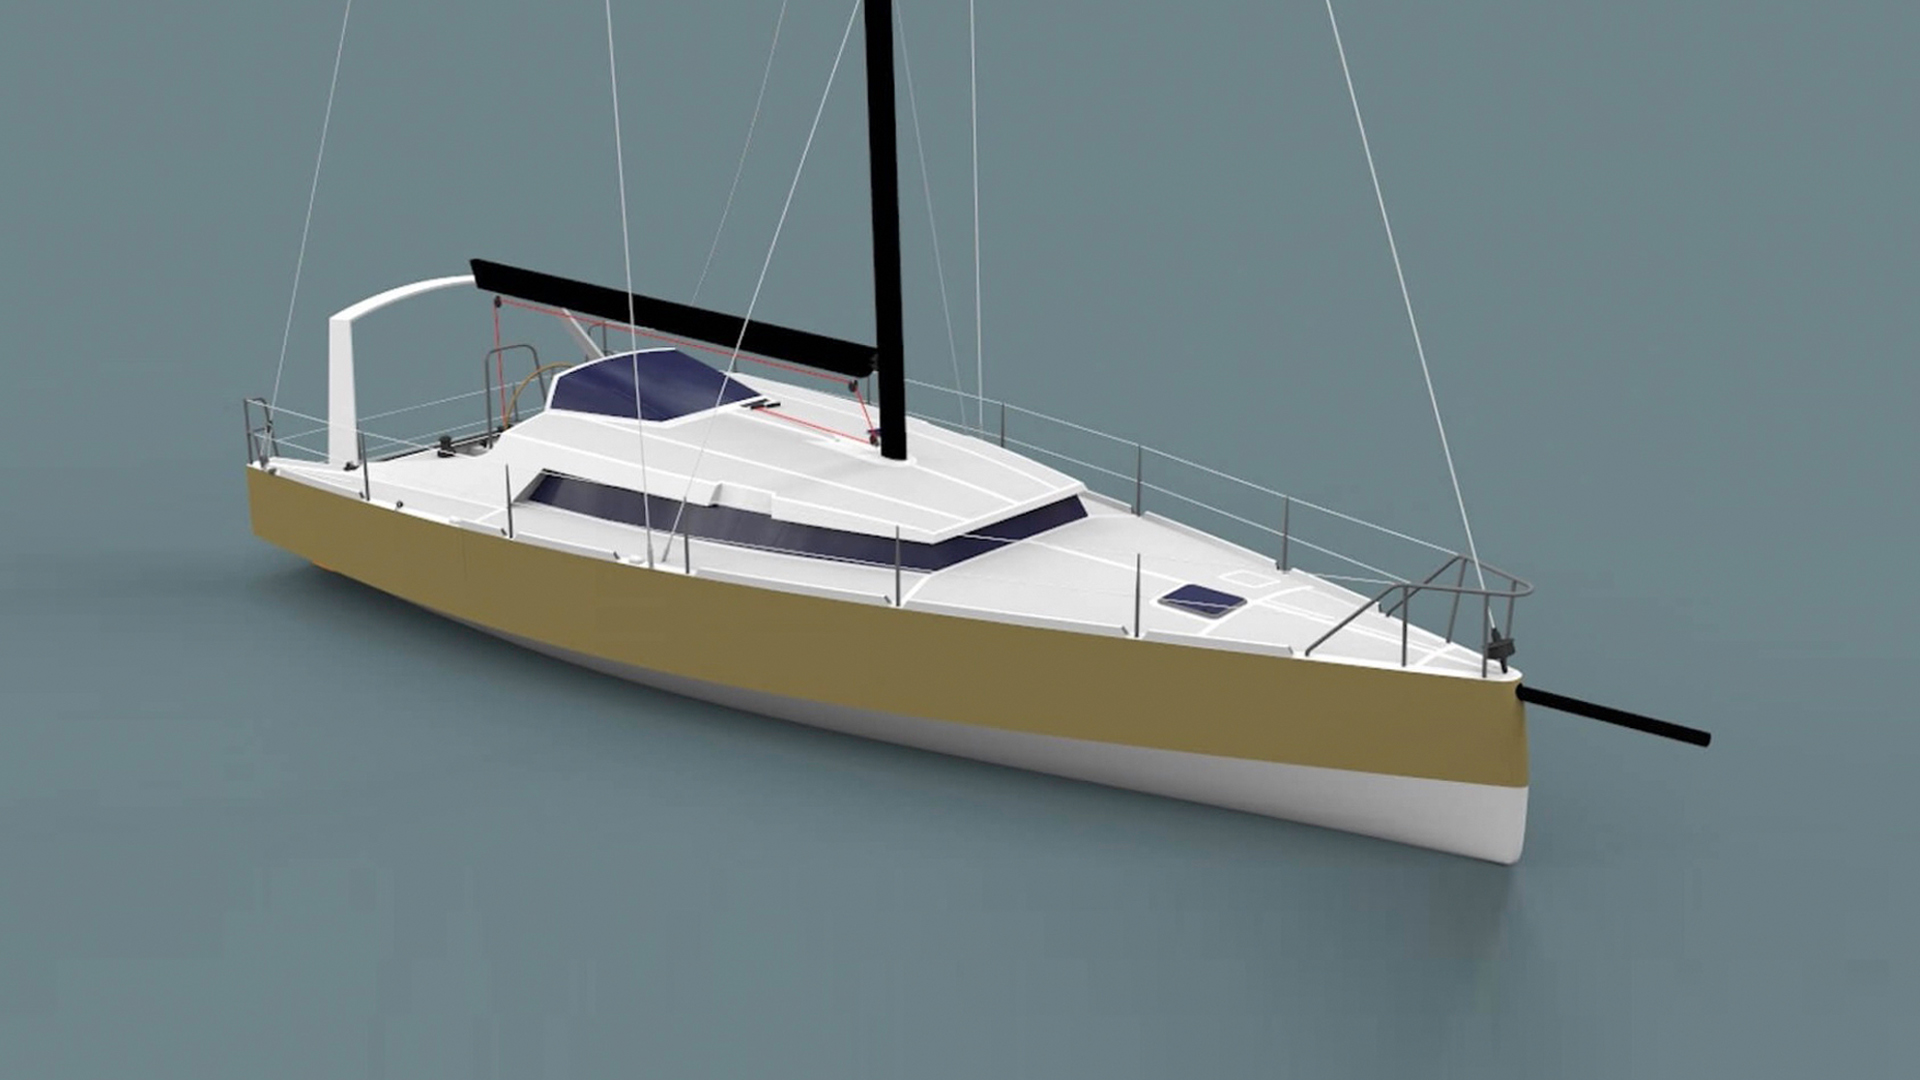 Owen Clarke Design are the designers of this custom 40 foot blue water lifting keel cruising yacht which is currently in-build at the  Alwoplast yard in Chile.